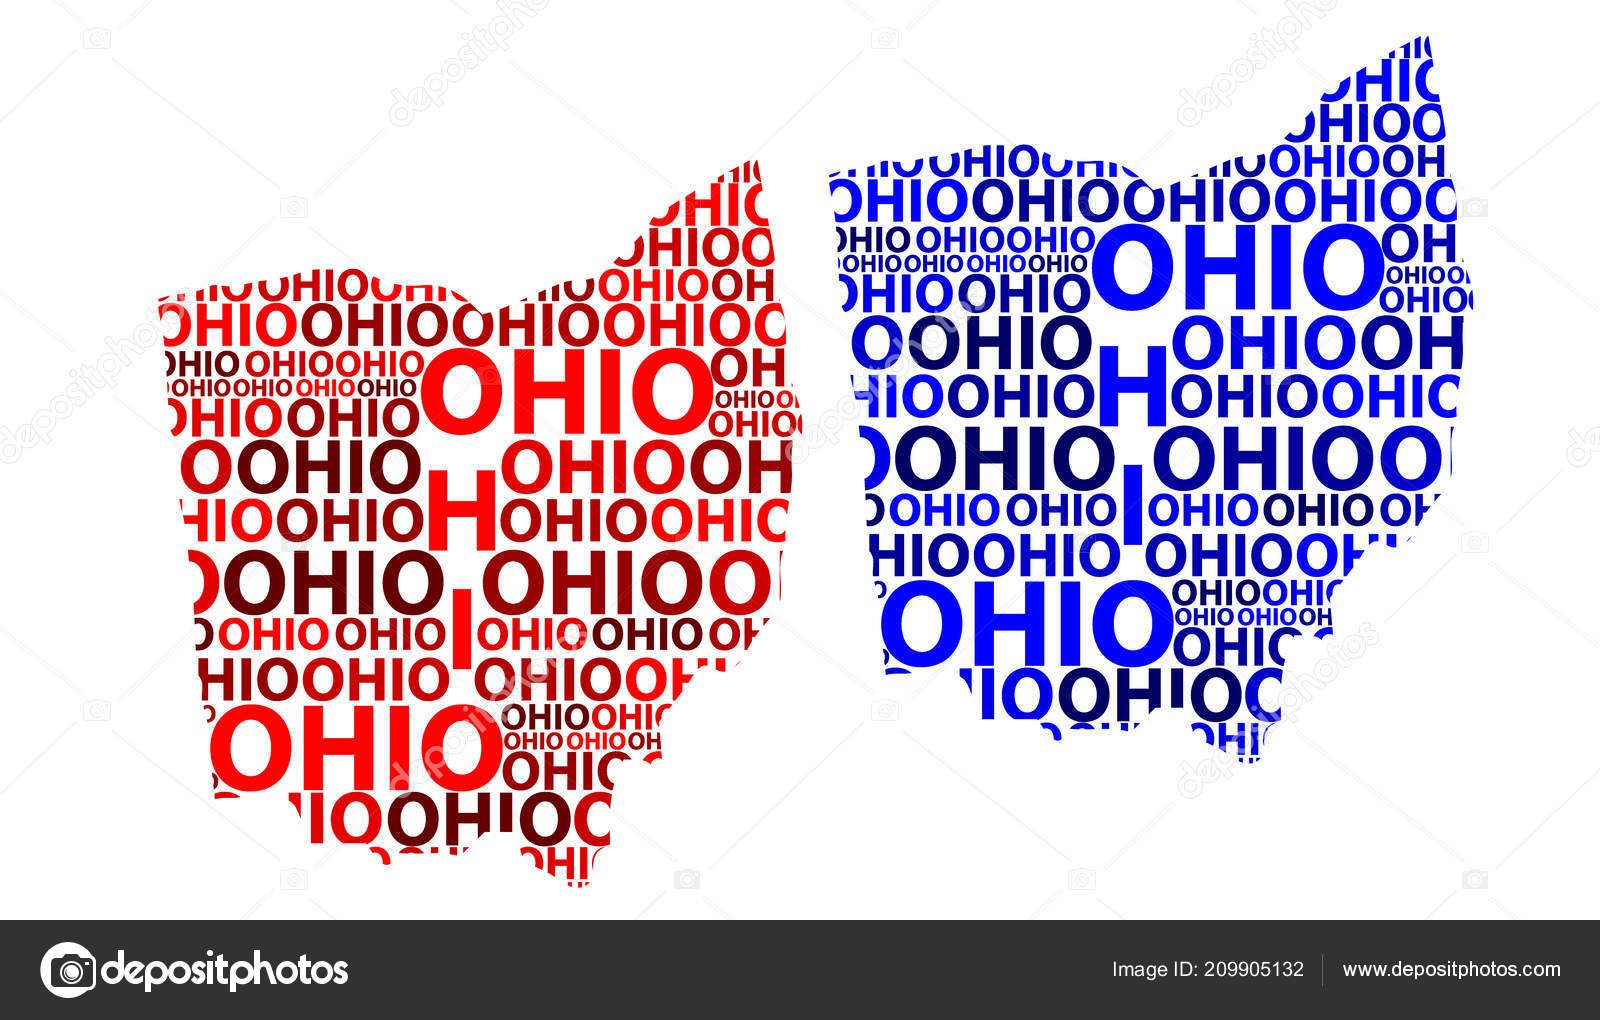 Ohio United States Map.Sketch Ohio United States America Letter Text Map Ohio Map Stock